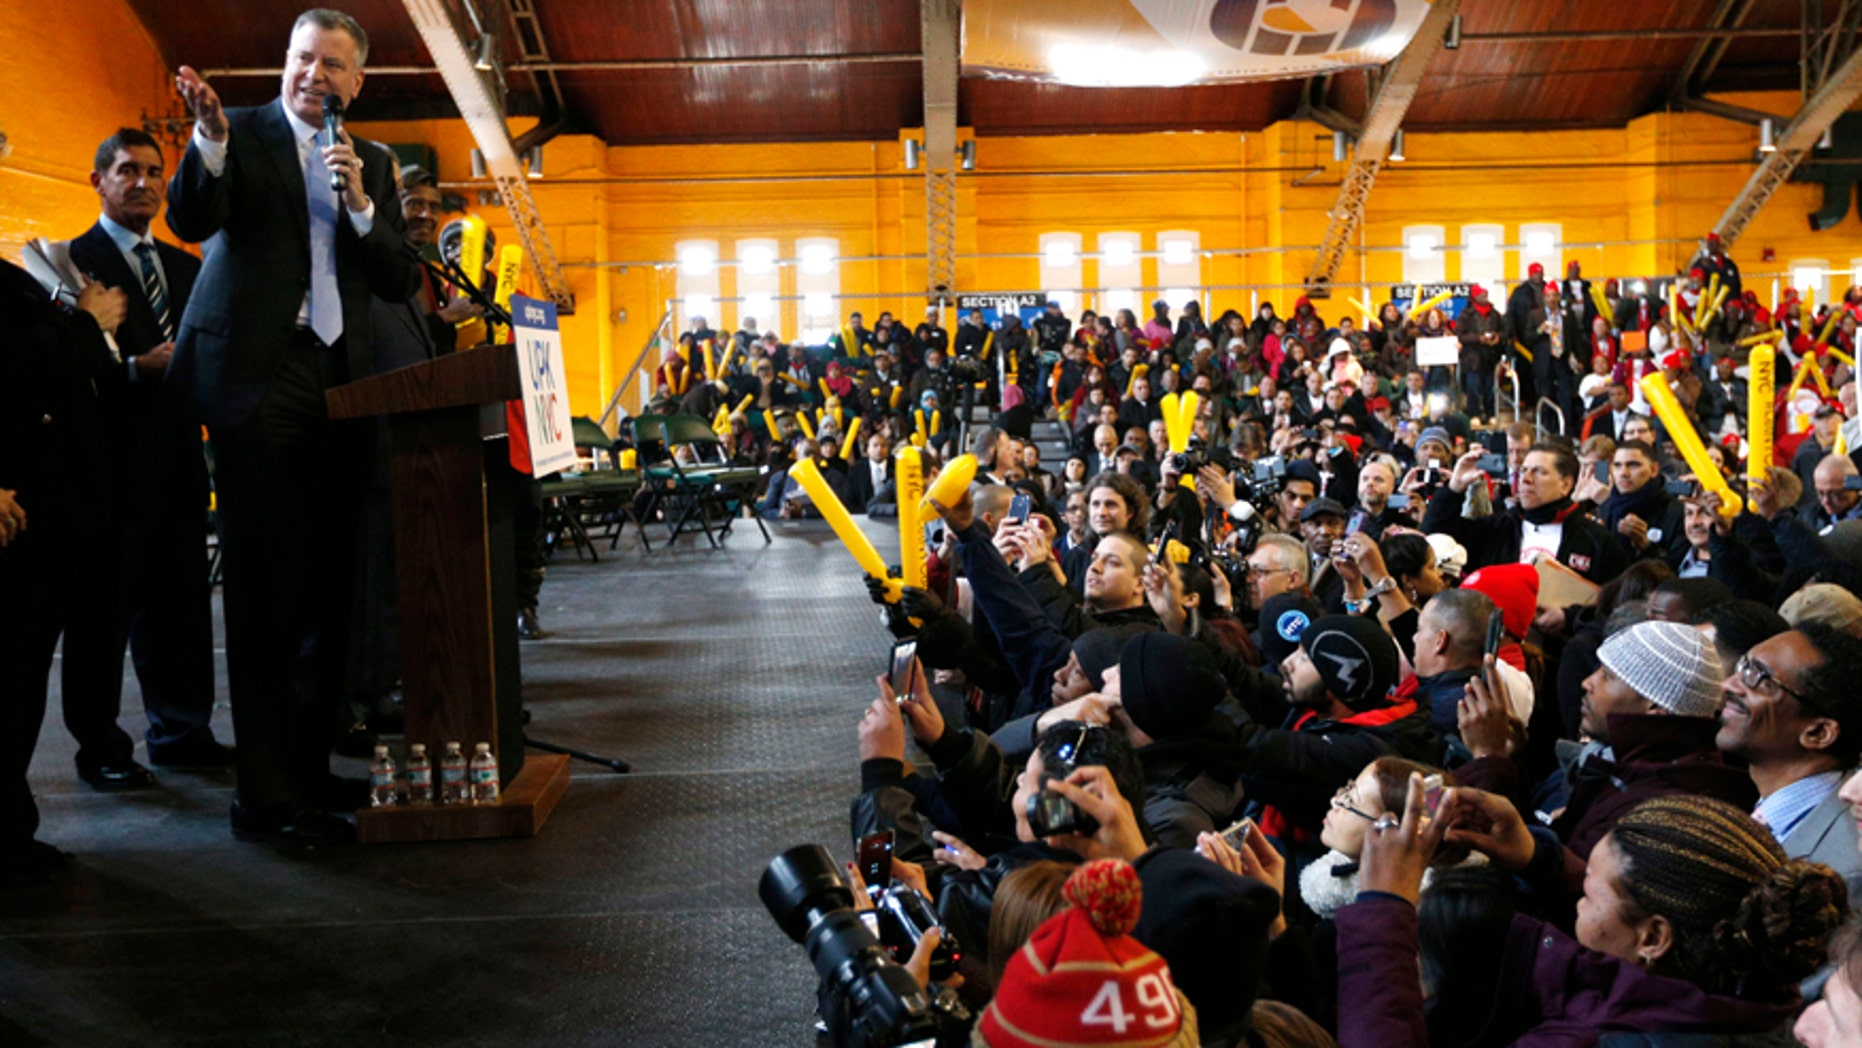 New York City Mayor Bill de Blasio speaks during a Pre K rally at the Washington Avenue Armory on Tuesday, March 4, 2014, in Albany, N.Y.